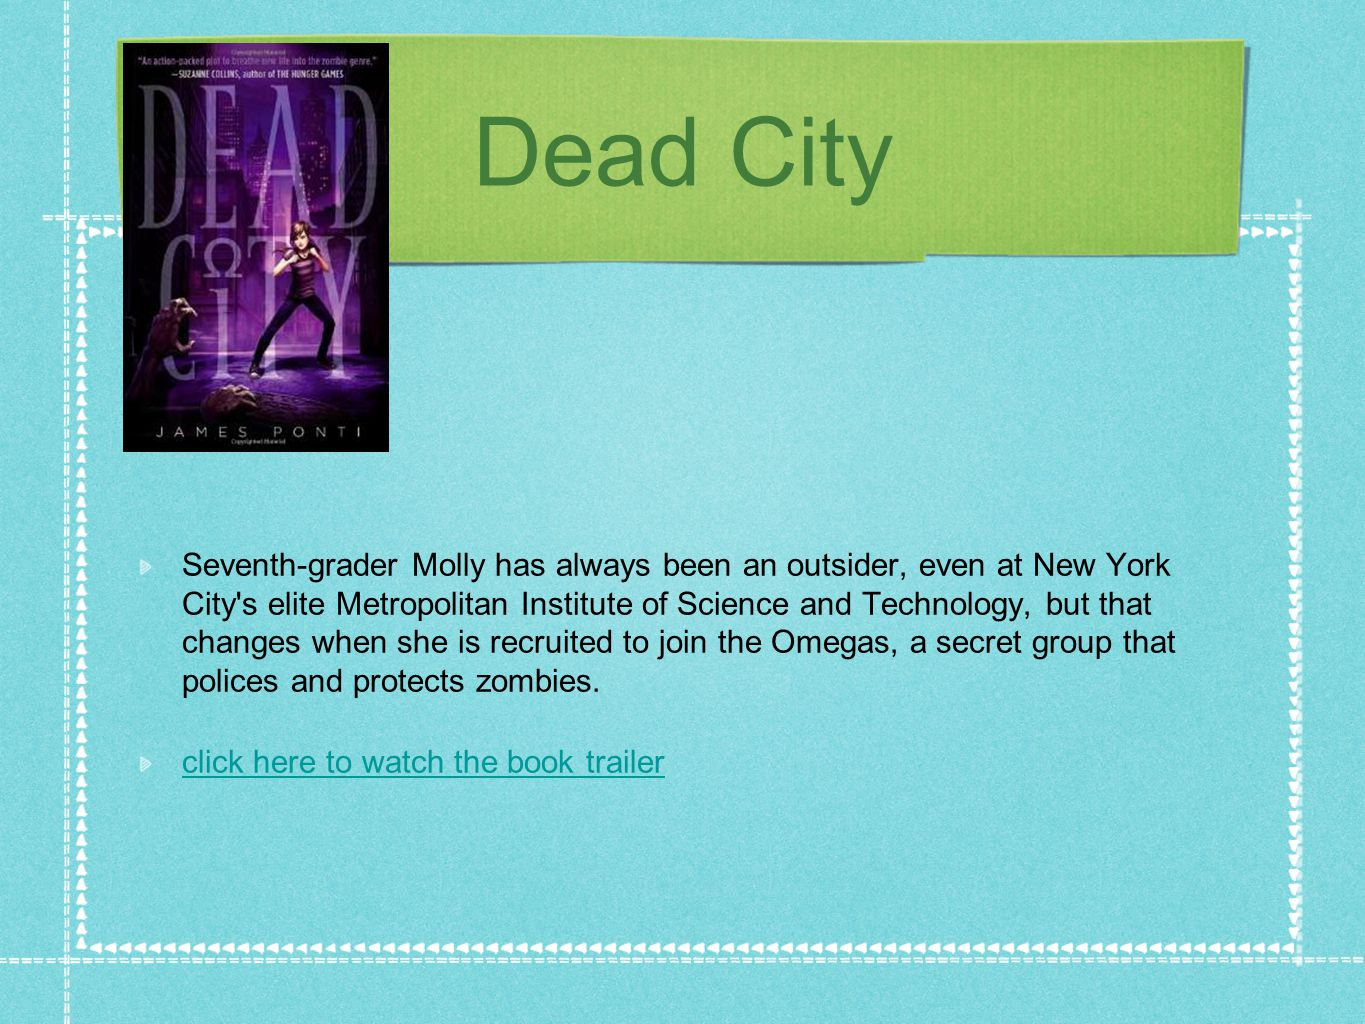 Dead City Seventh-grader Molly has always been an outsider, even at New York City s elite Metropolitan Institute of Science and Technology, but that changes when she is recruited to join the Omegas, a secret group that polices and protects zombies.